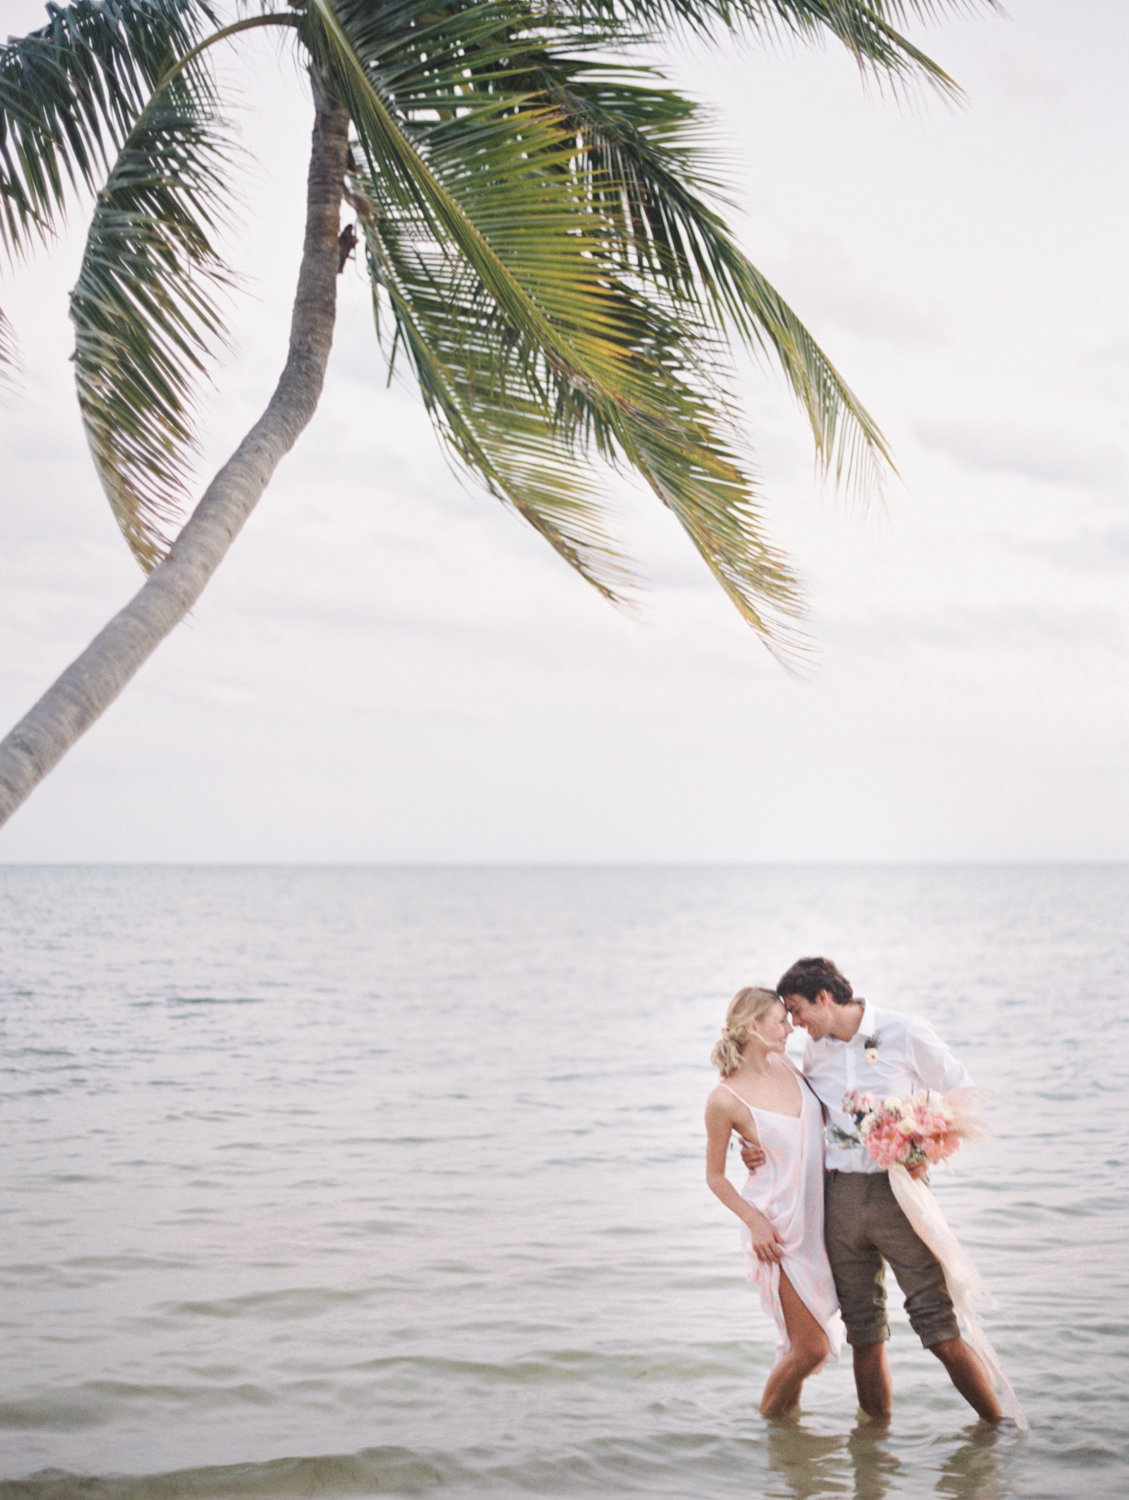 island-elopement-destination-wedding-photographer-melanie-gabrielle-photography-0147